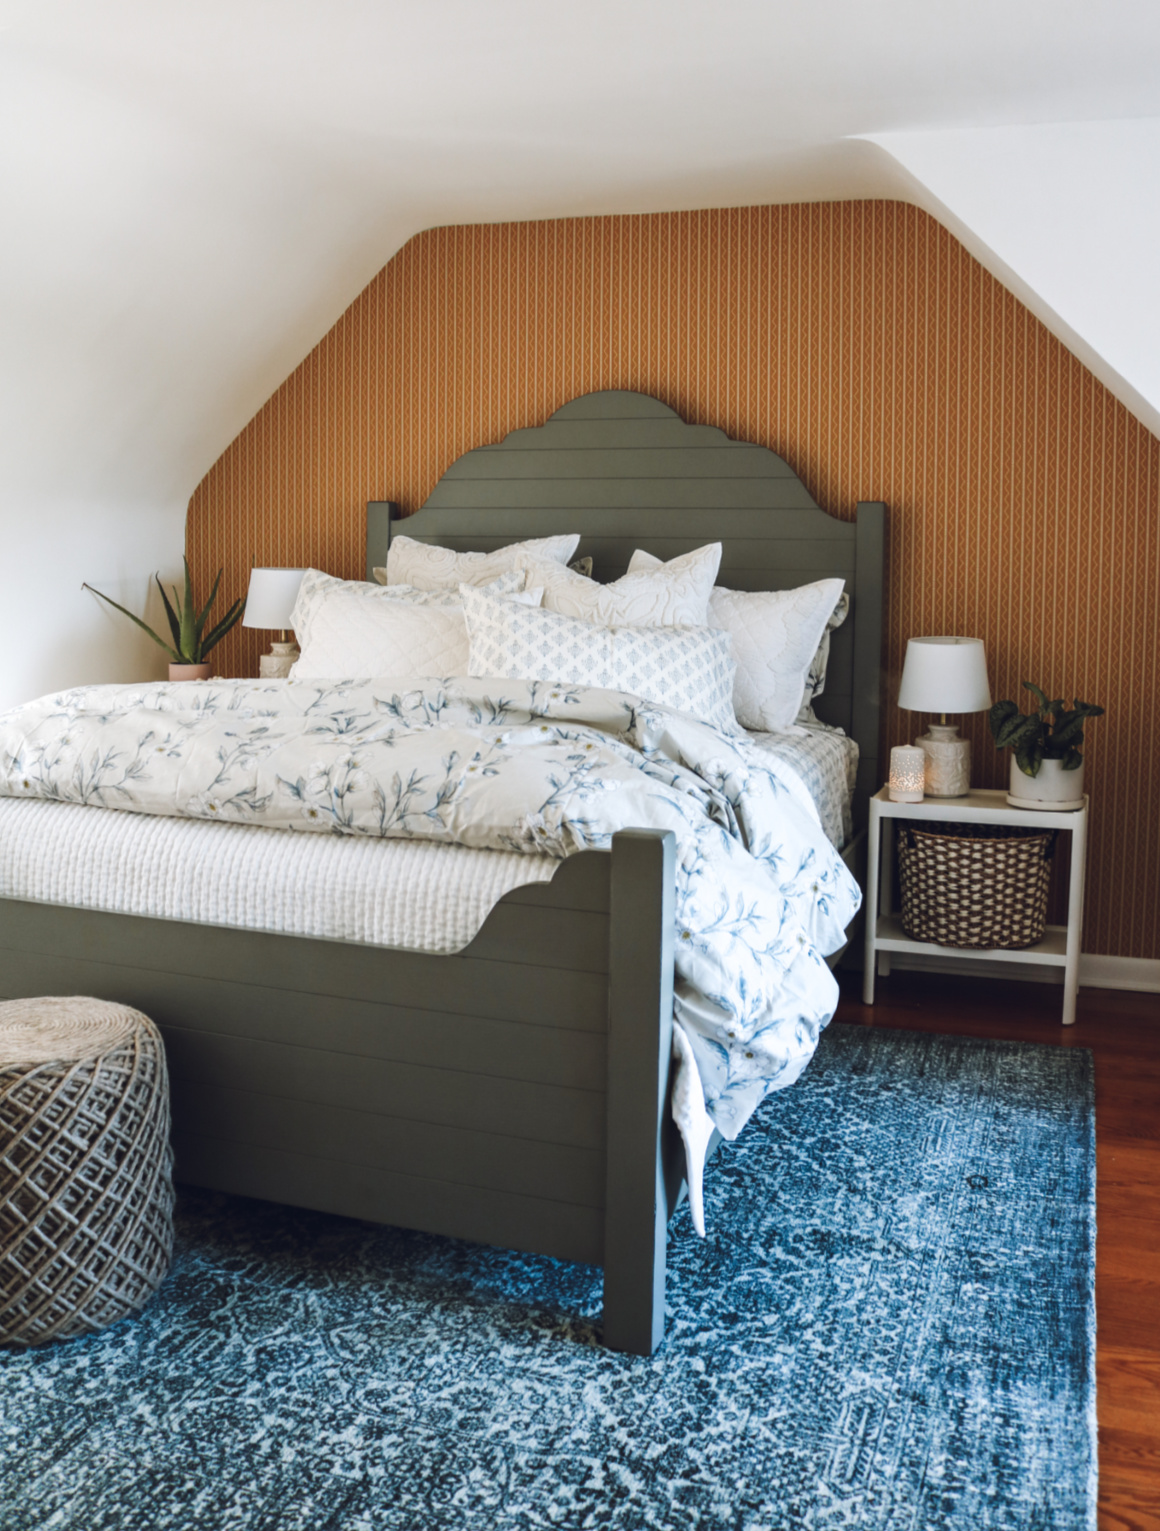 7 Things Every Guest Room Needs